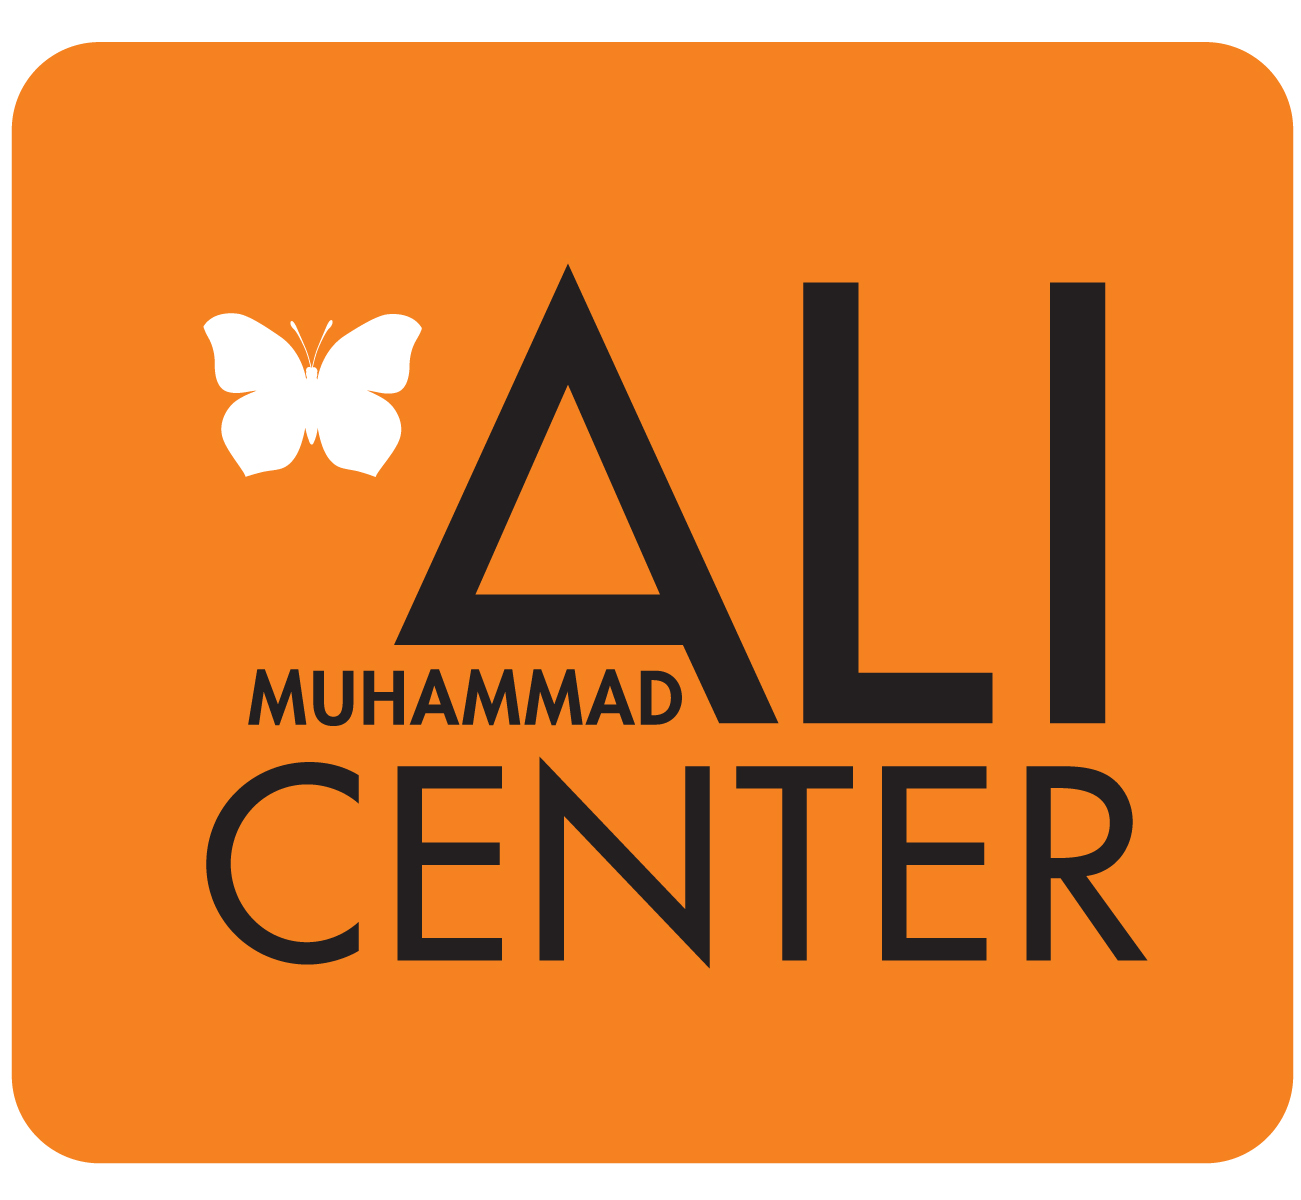 muhammad ali muhammad ali center be great do great things muhammad ali center be great do great things